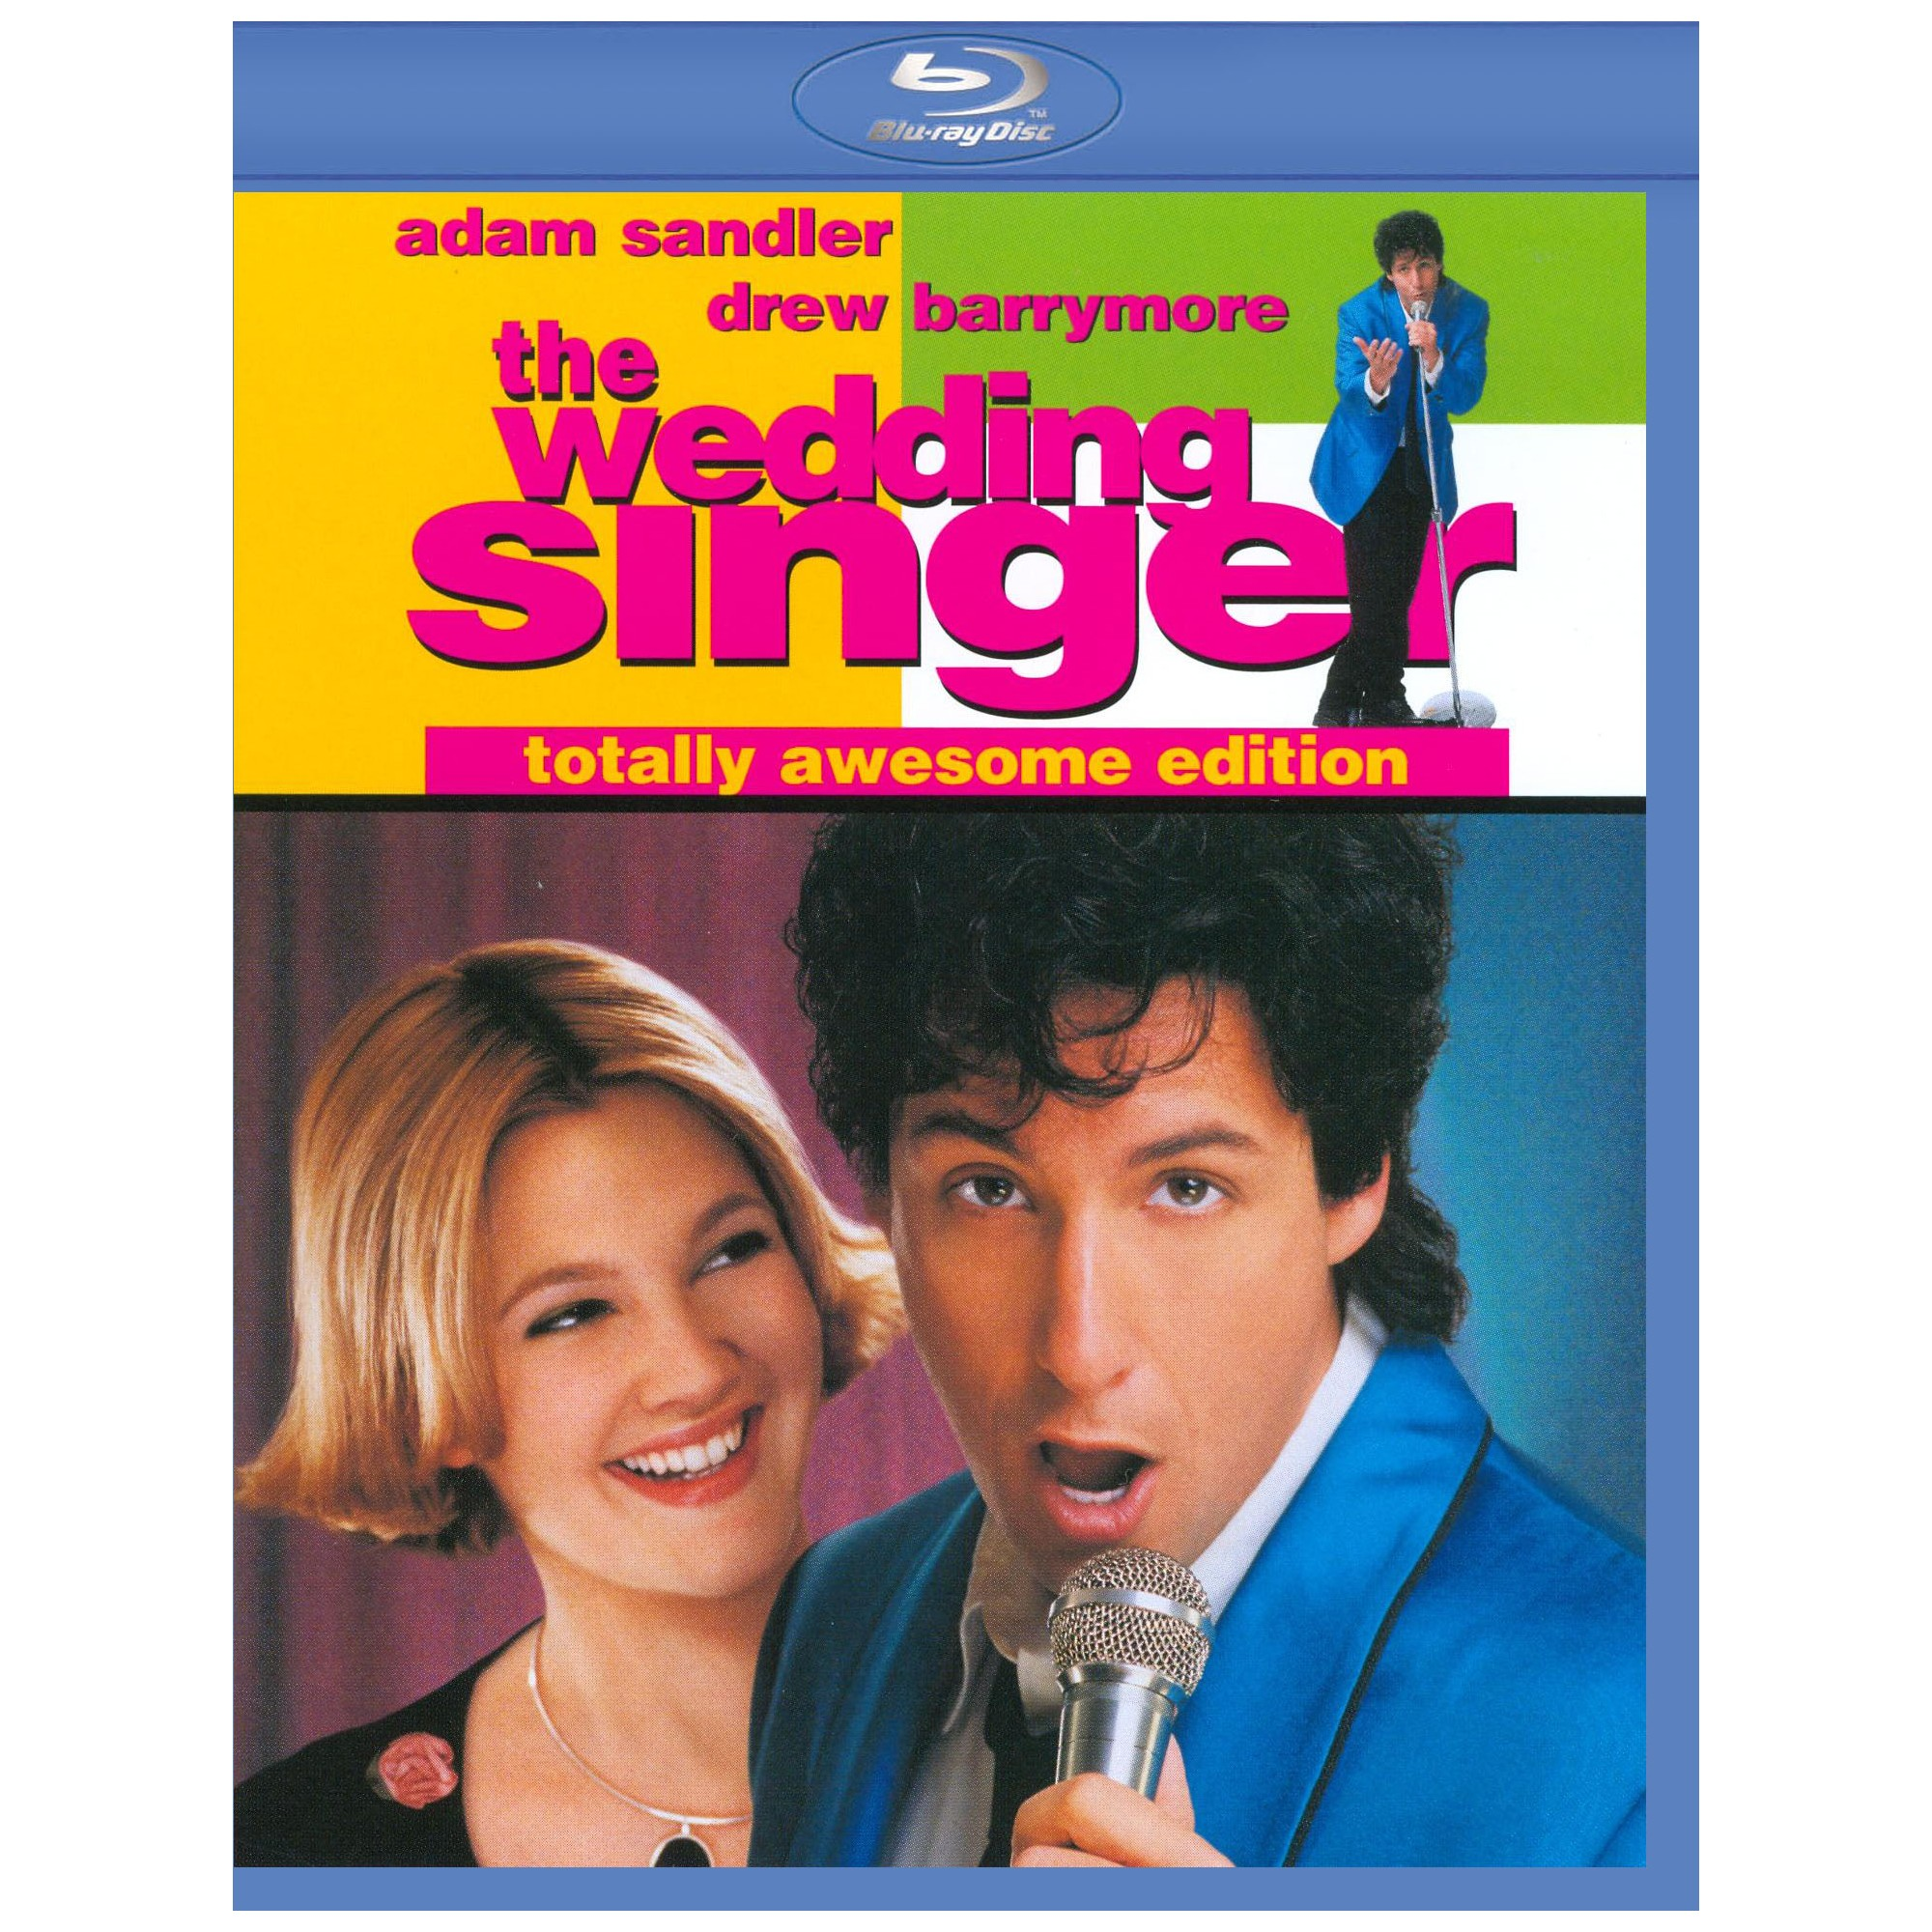 The Wedding Singer (Totally Awesome Edition) (With Movie